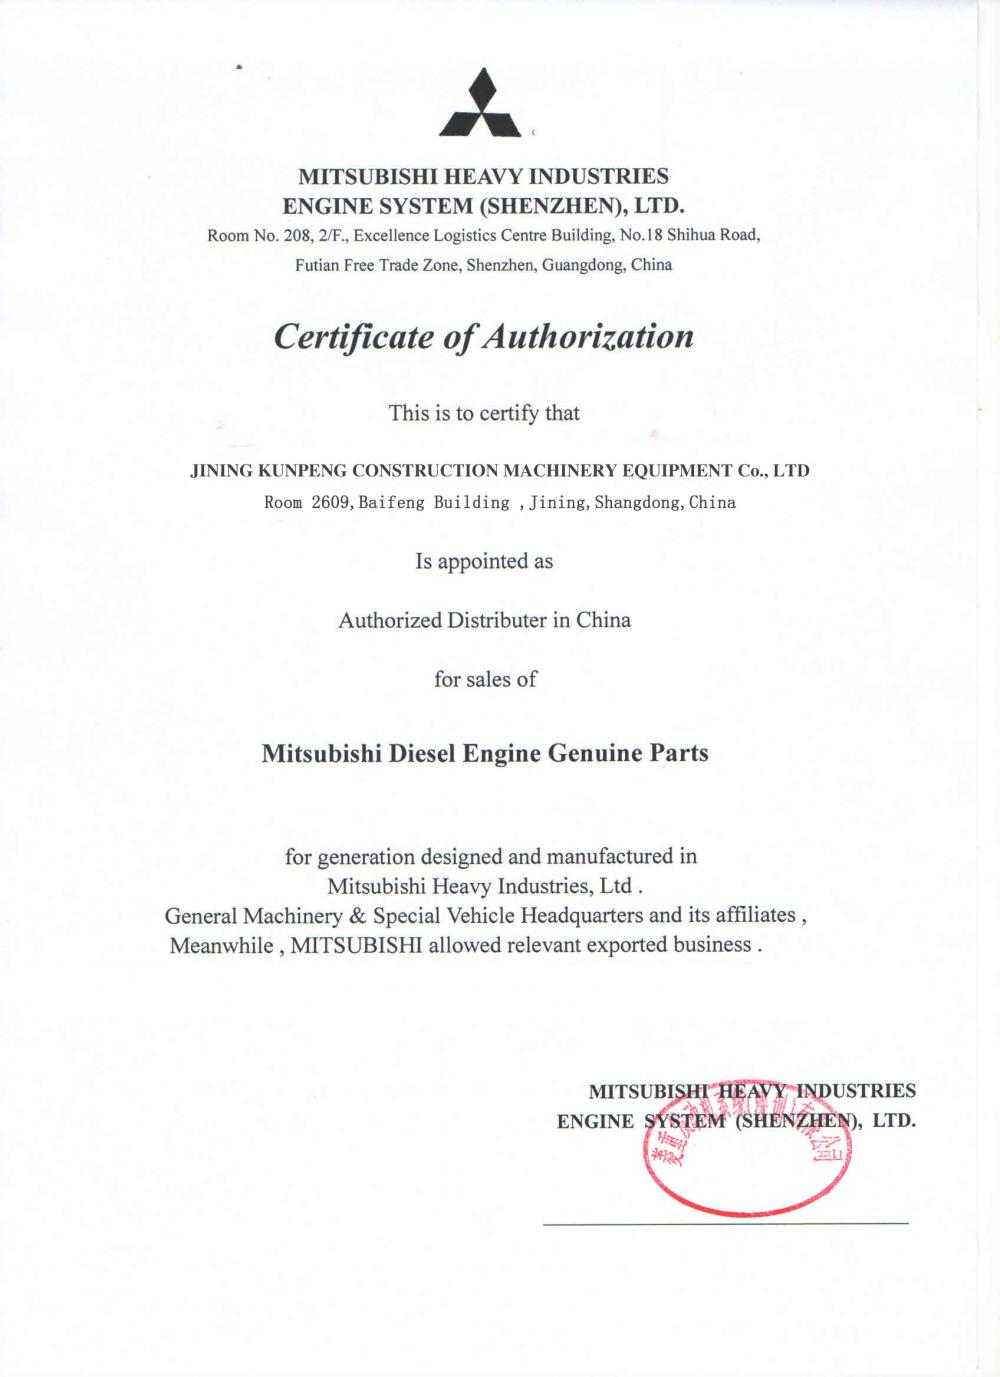 Certificate for Mitsubishi